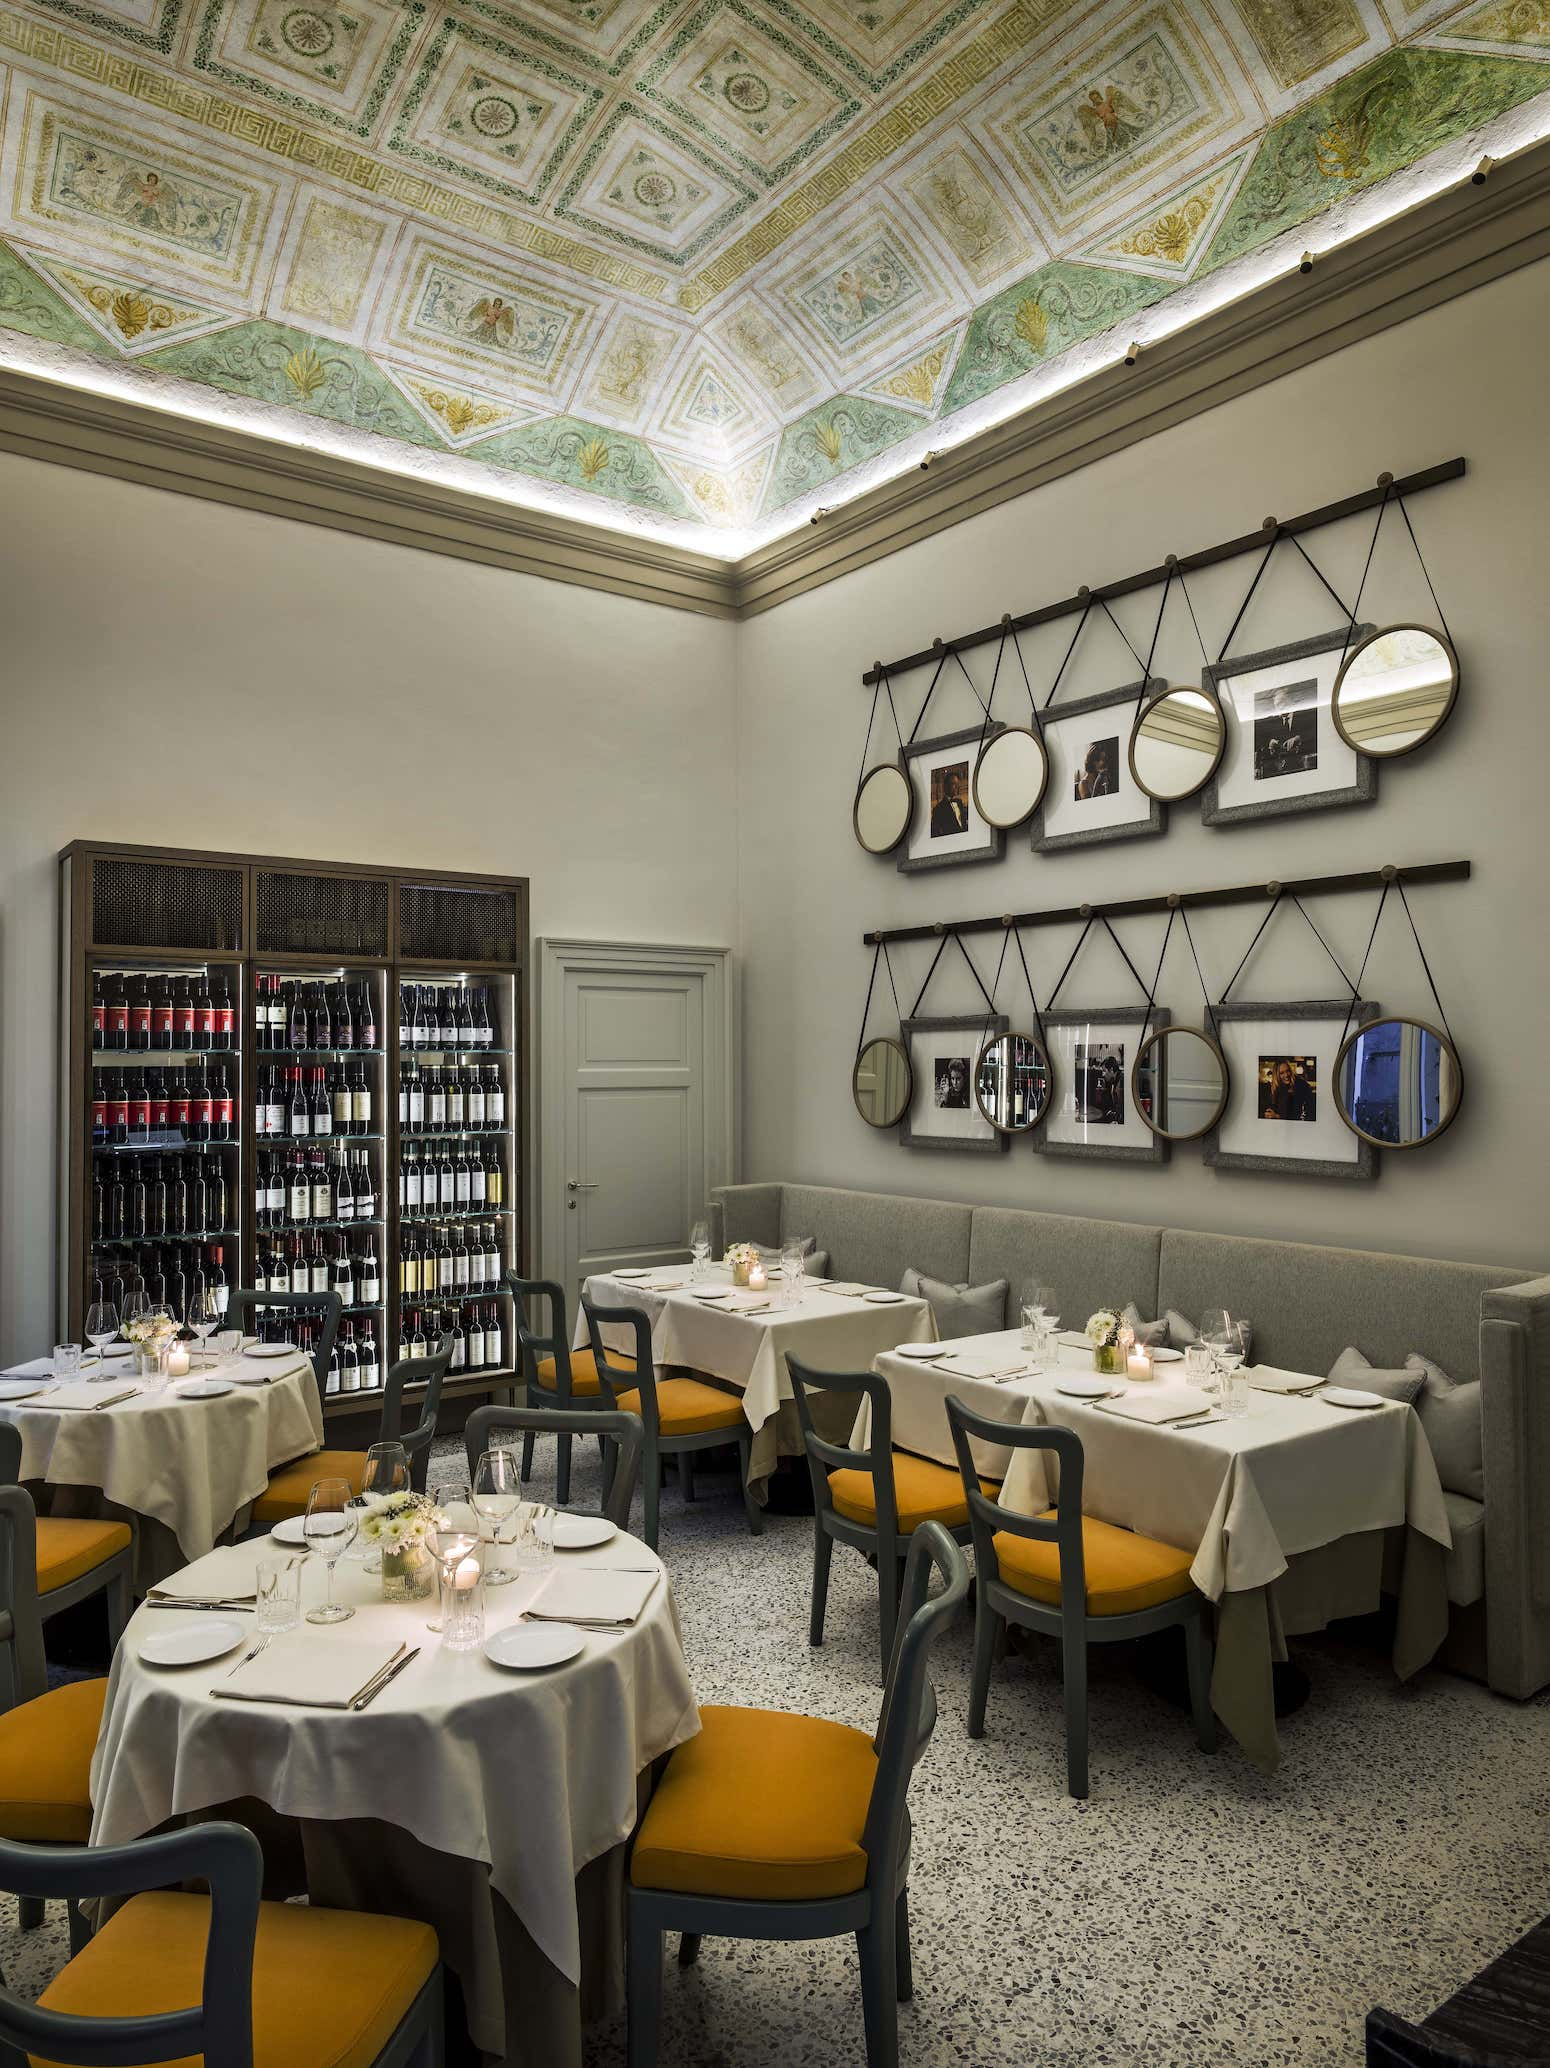 Paper Moon Giardino Restaurant in Milan designed by AB Concept Interior Design